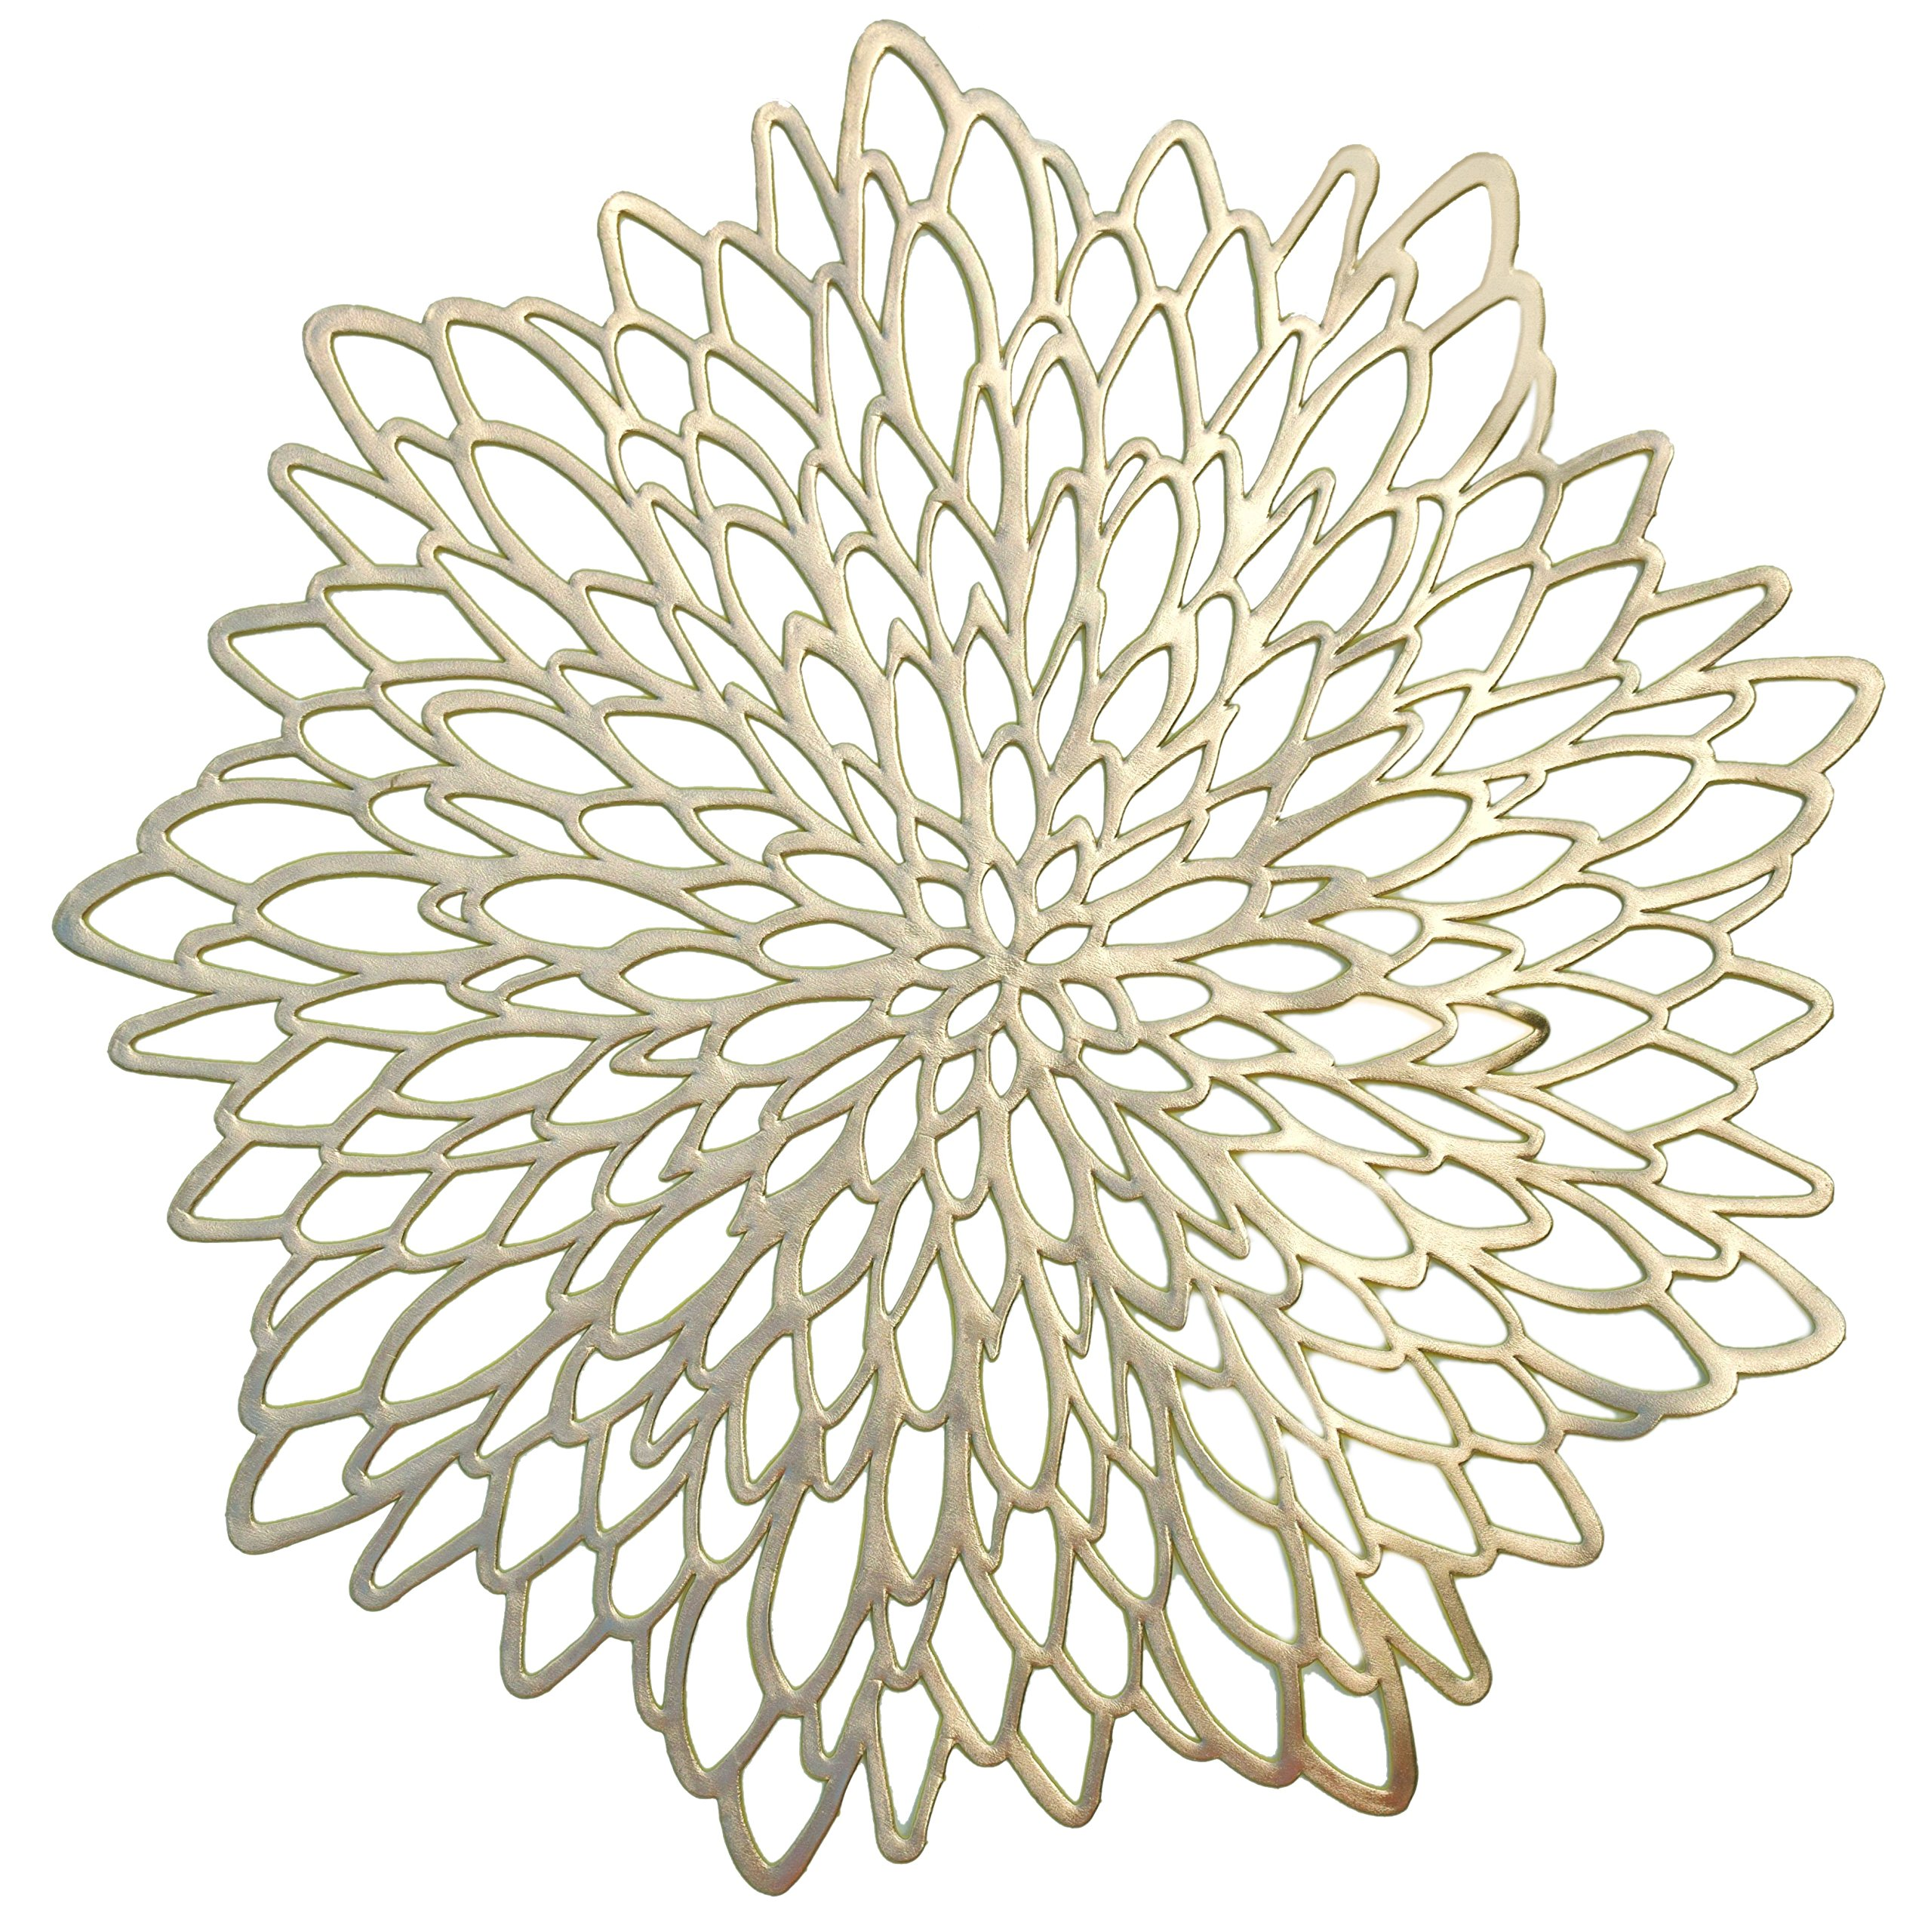 '' OCCASIONS'' 10 PACK Pressed Vinyl Metallic Placemats/Charger / Wedding Accent Centerpiece (10 pcs, Round Gold Leaf)